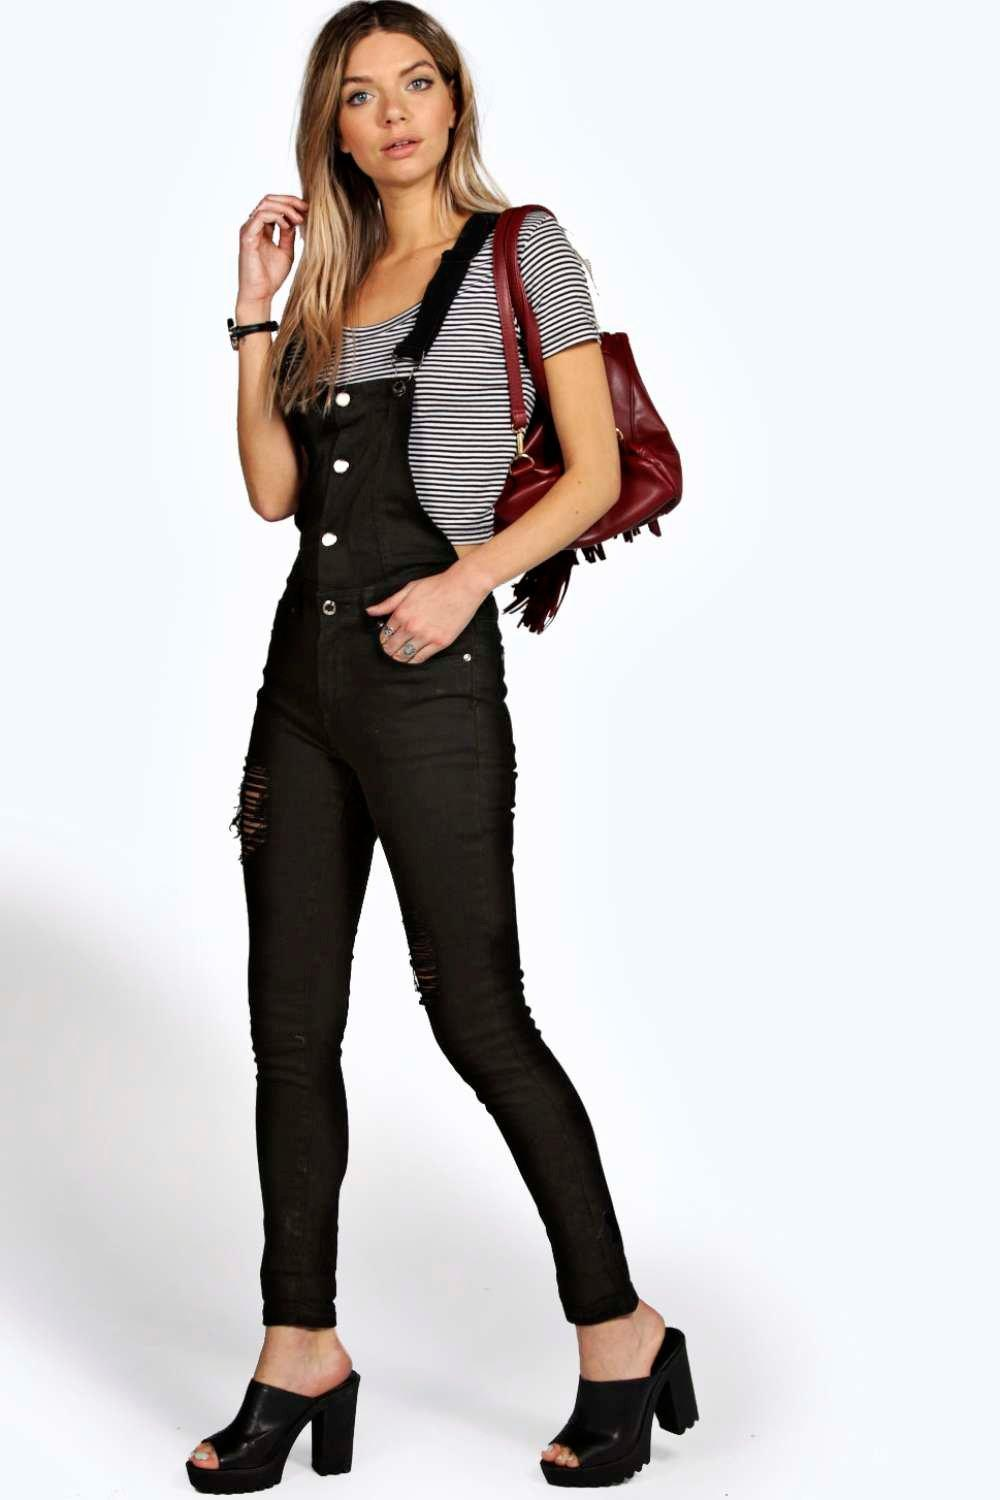 Image result for dungarees